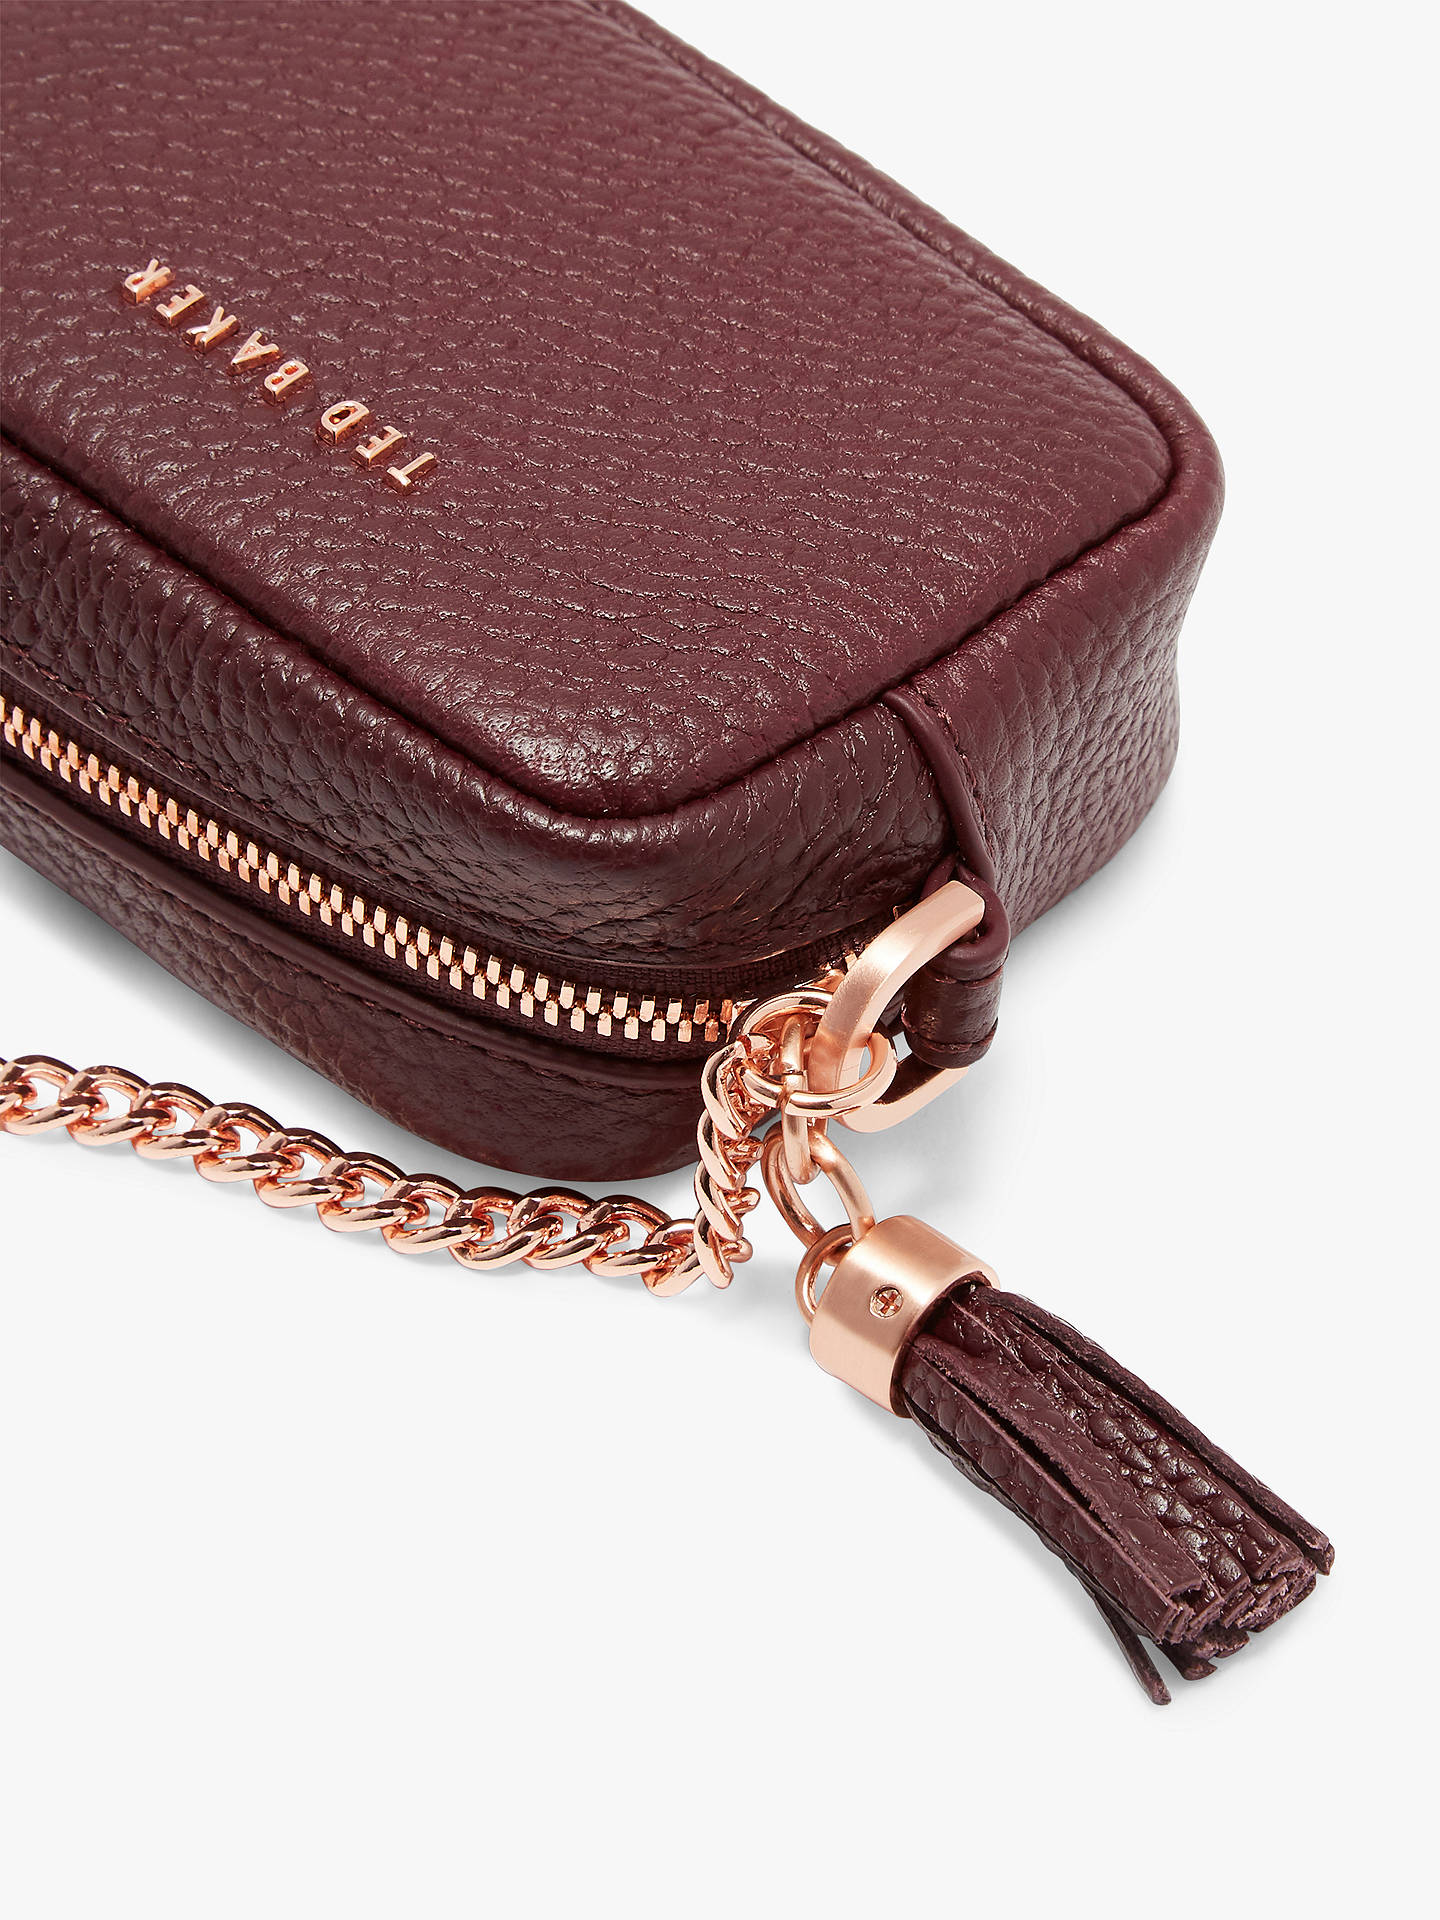 Buy Ted Baker Mmorgan Leather Coin Purse Bag Charm, Dark Purple Online at johnlewis.com